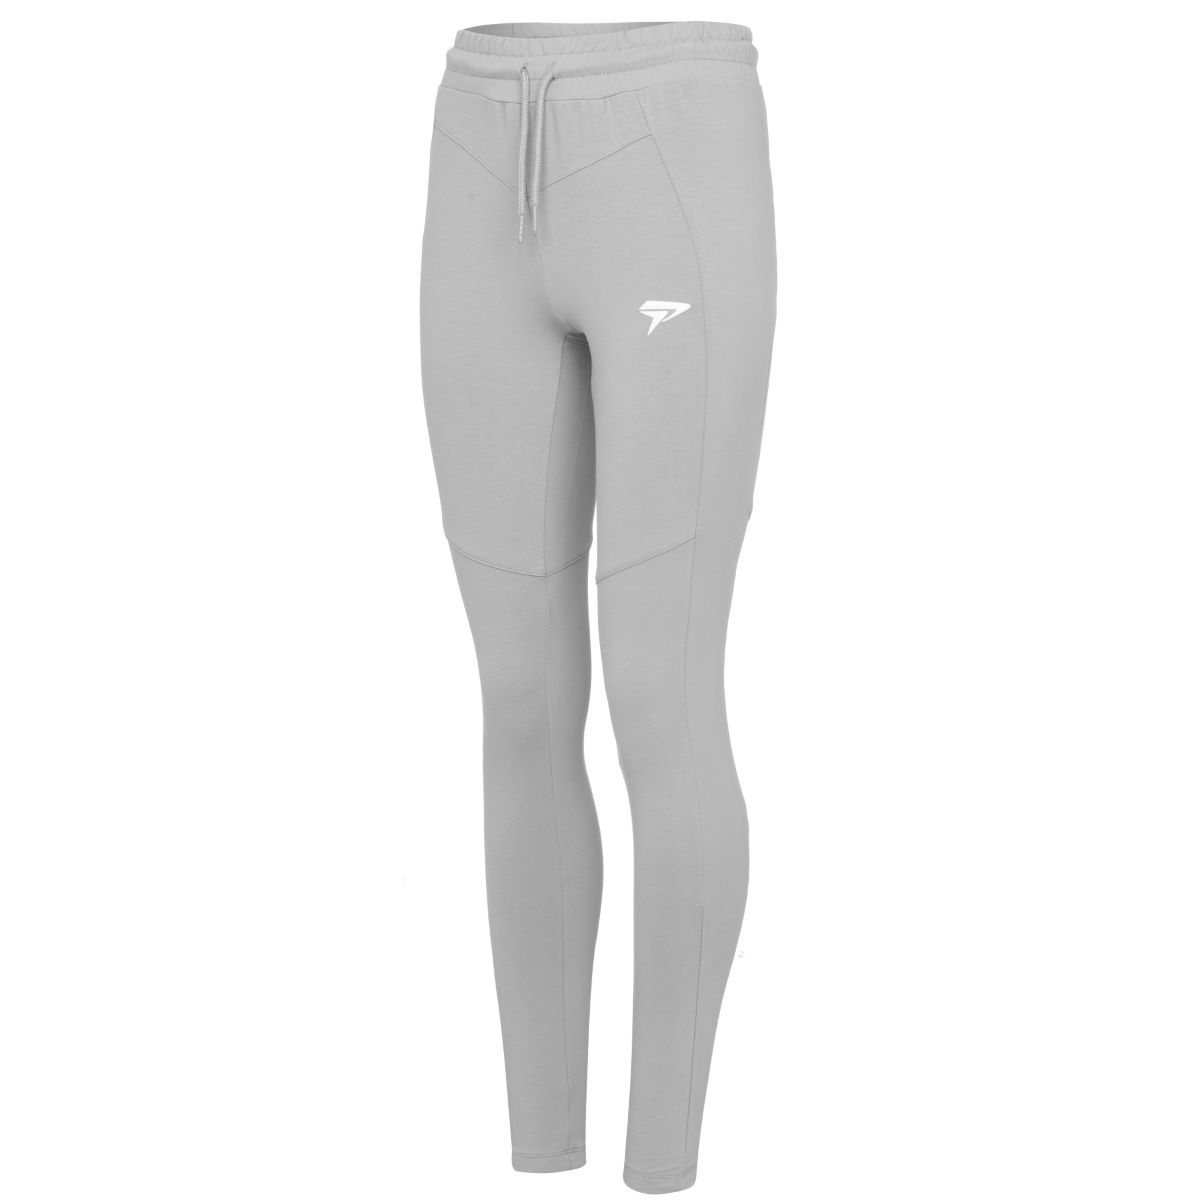 Physiq Apparel Women's Sculpt Fitted Bottoms - Mallas